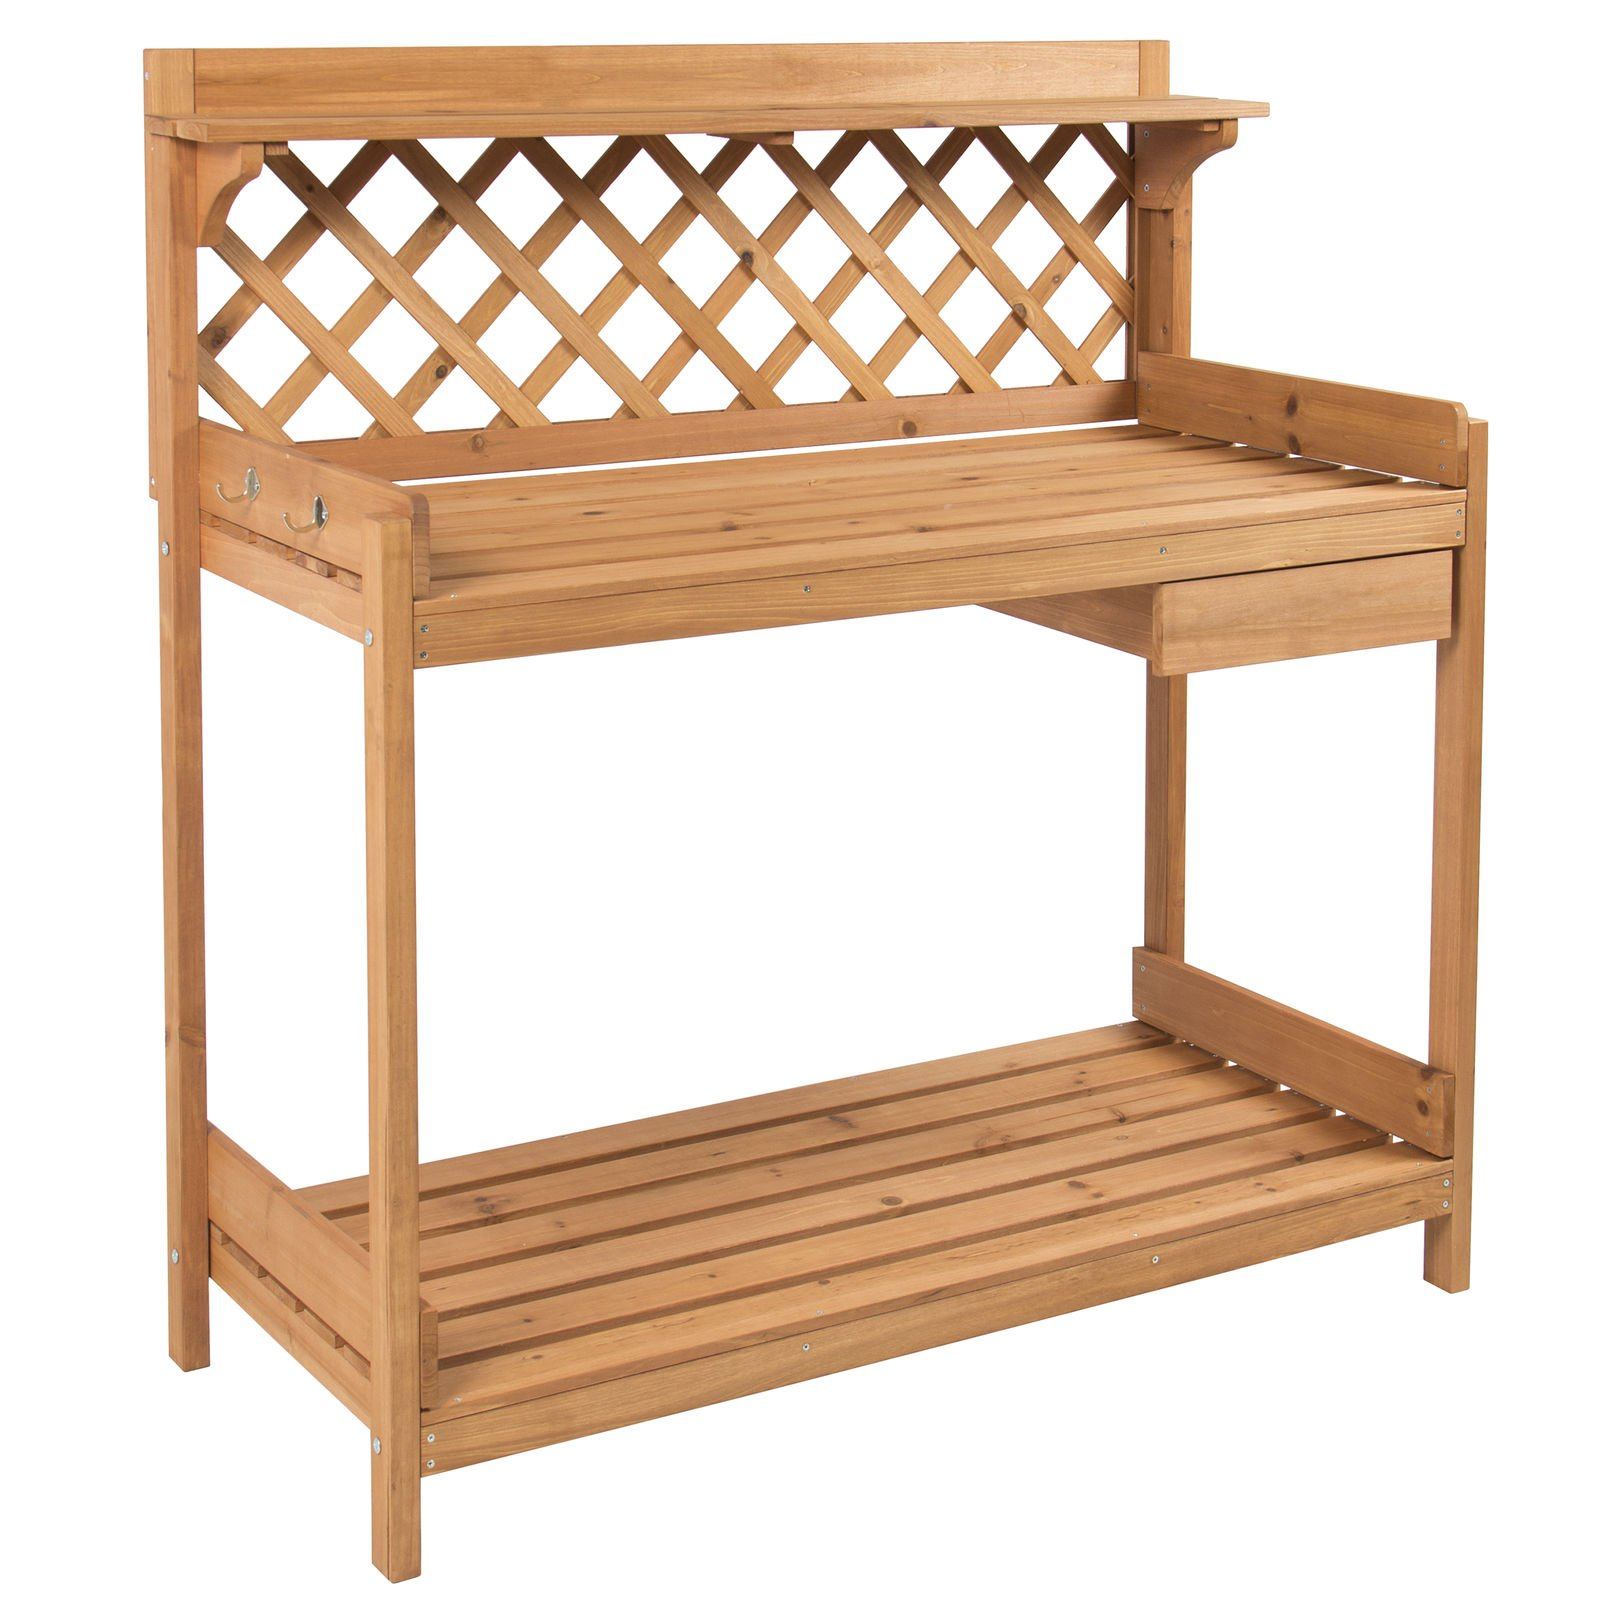 Patio Chairs, Swings & Benches NEW Potting Bench Outdoor Garden Work Bench Station Planting Solid Wood Construction